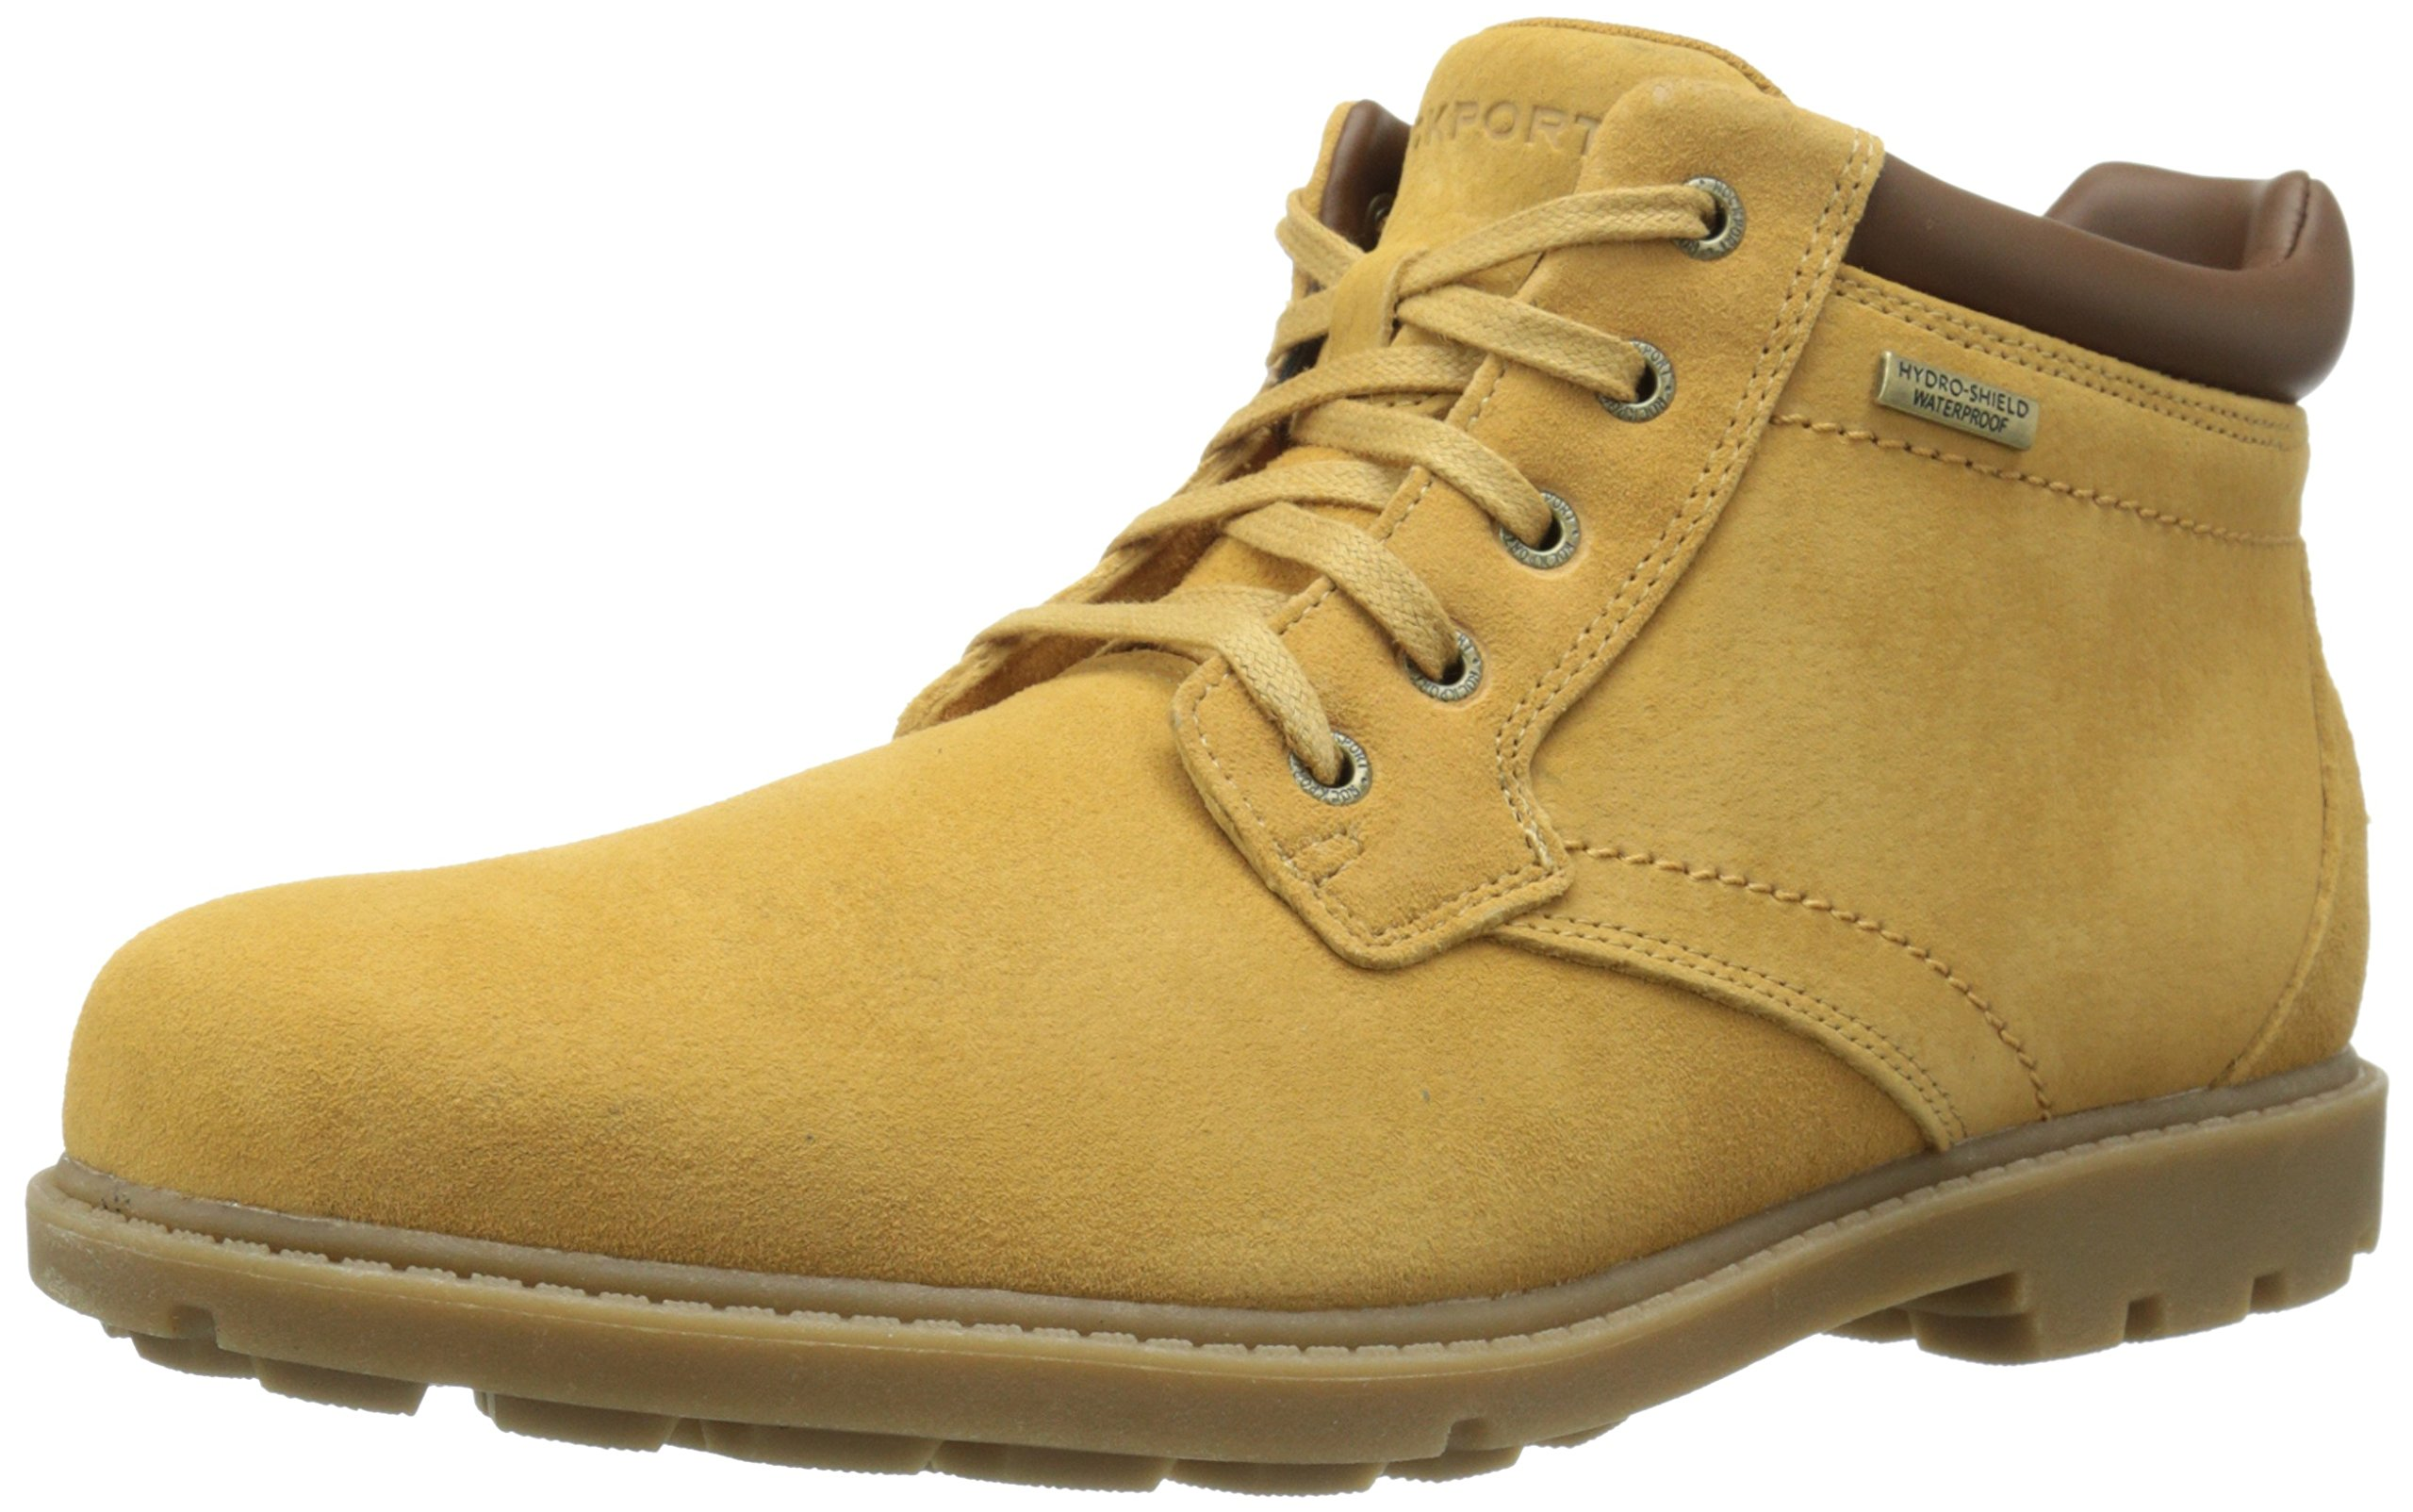 Rockport Men's Rugged Bucks Waterproof Boot Tan Suede 12 M (D)-12 M by Rockport